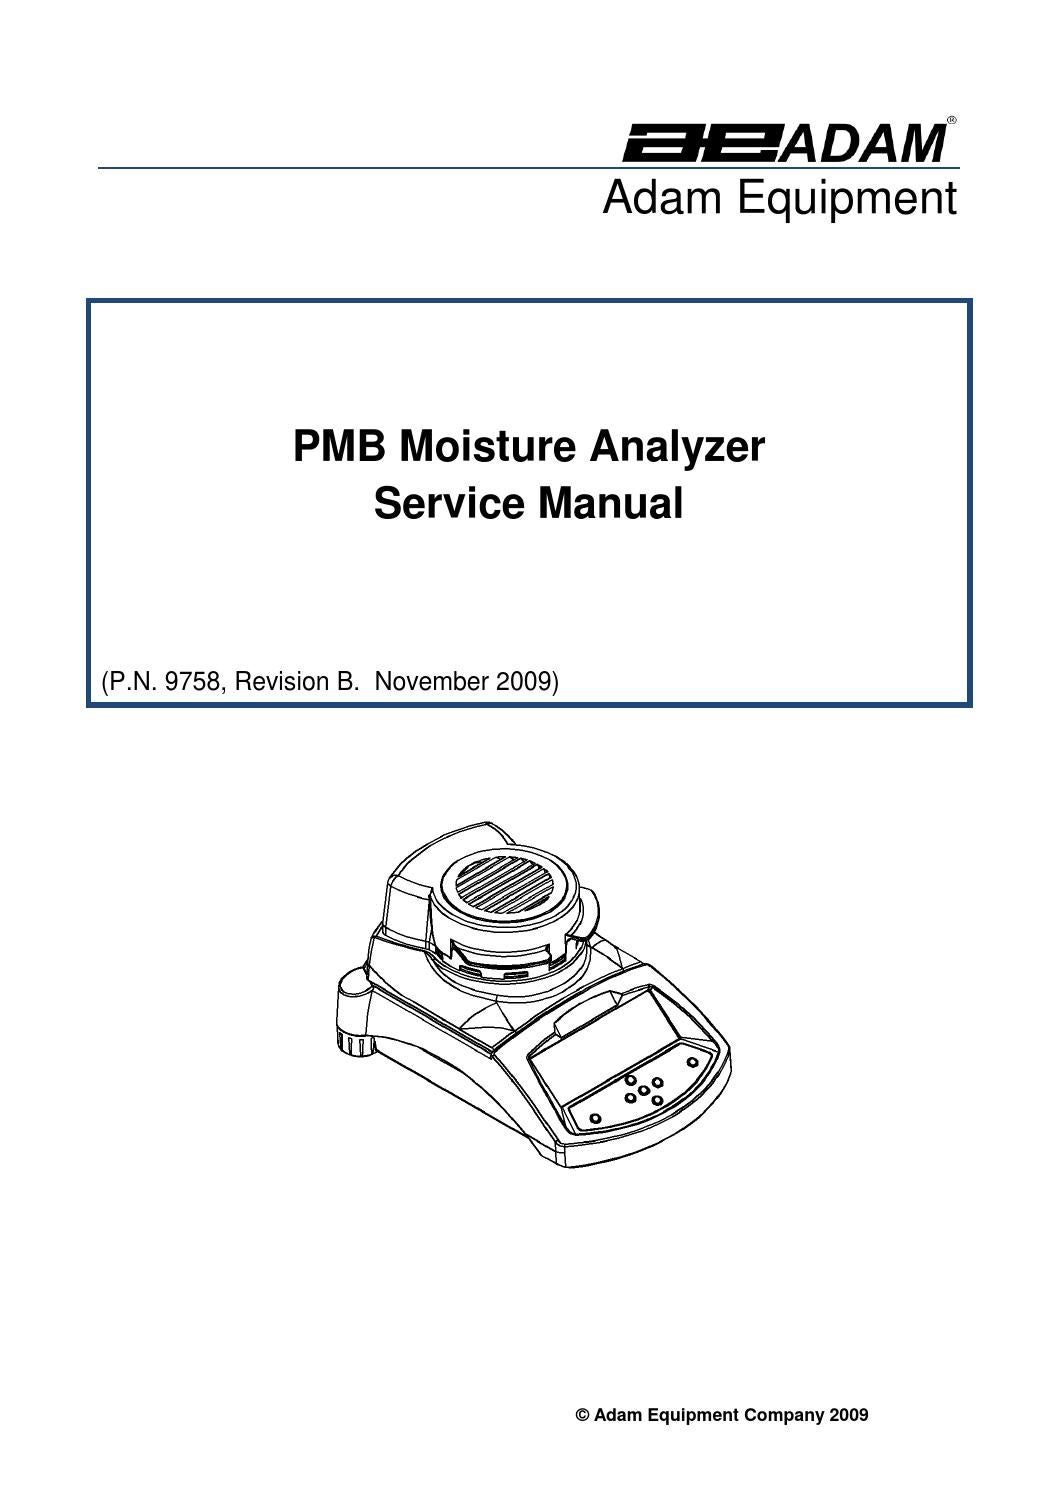 Service manual PMB Moisture Analyzer Adam Equipment by